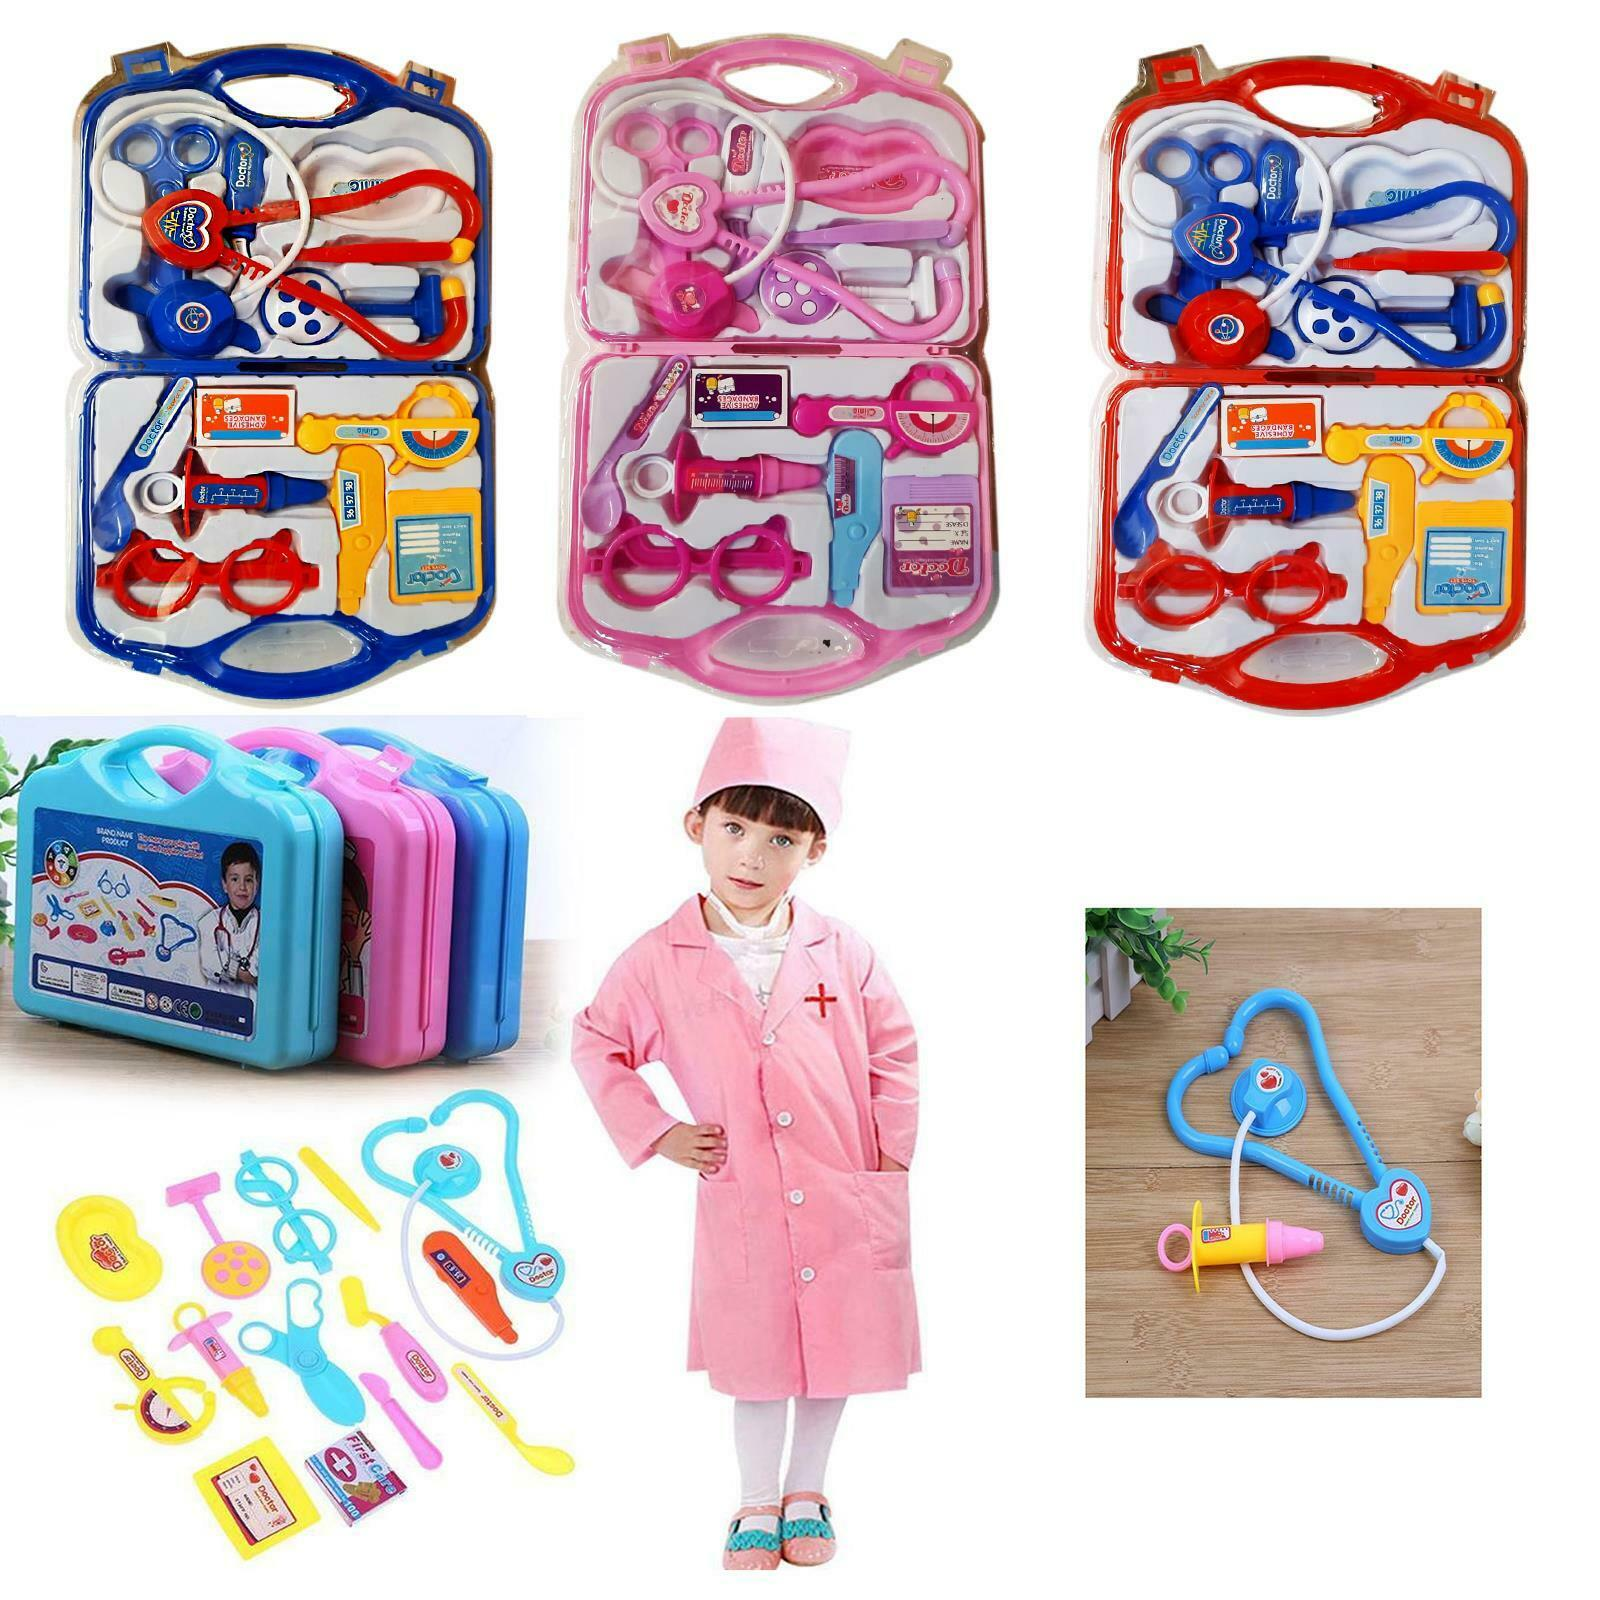 Simulation Accessories Toys Role Playing Family Party Game Doctor Costume Playset Activities for Boy Girl Christmas Birthday Gif